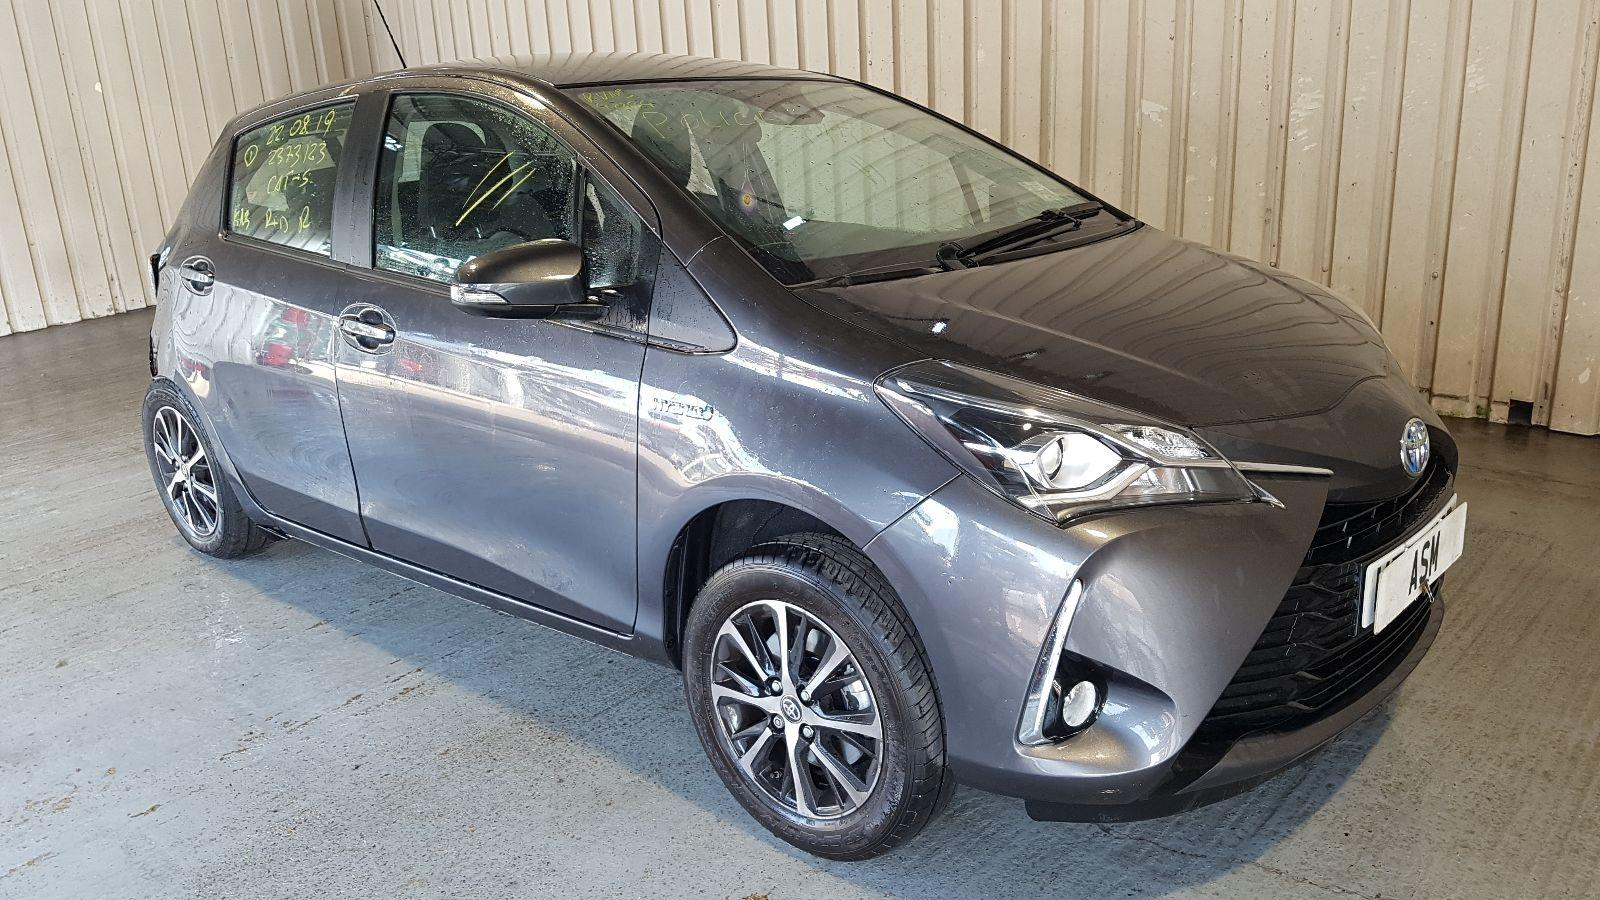 Image for a 2019 Toyota Yaris 1.5 Petrol  Engine